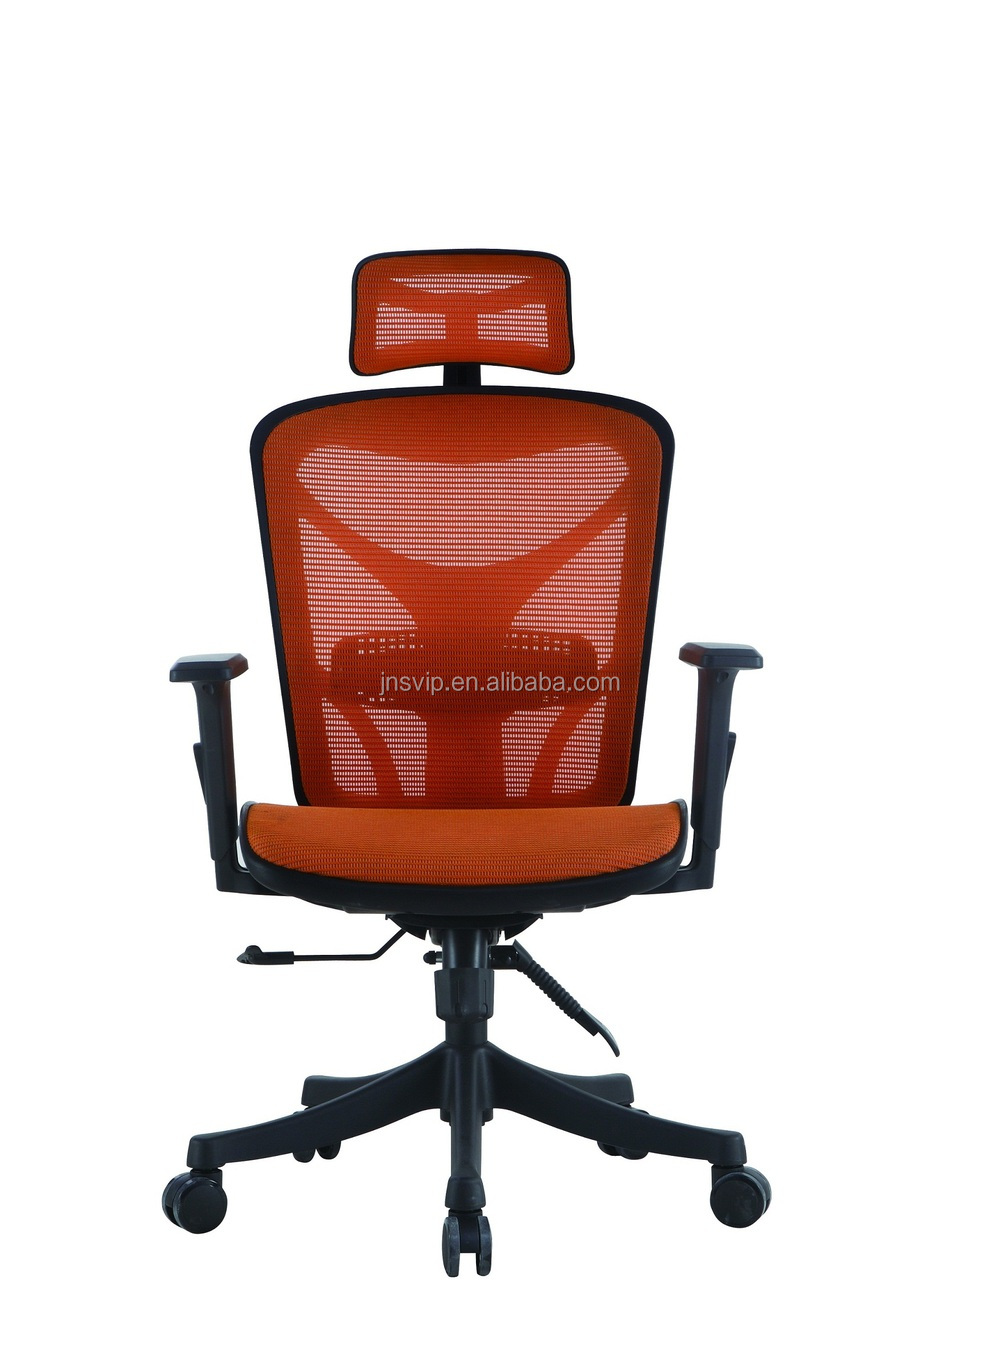 Double pole control office chair